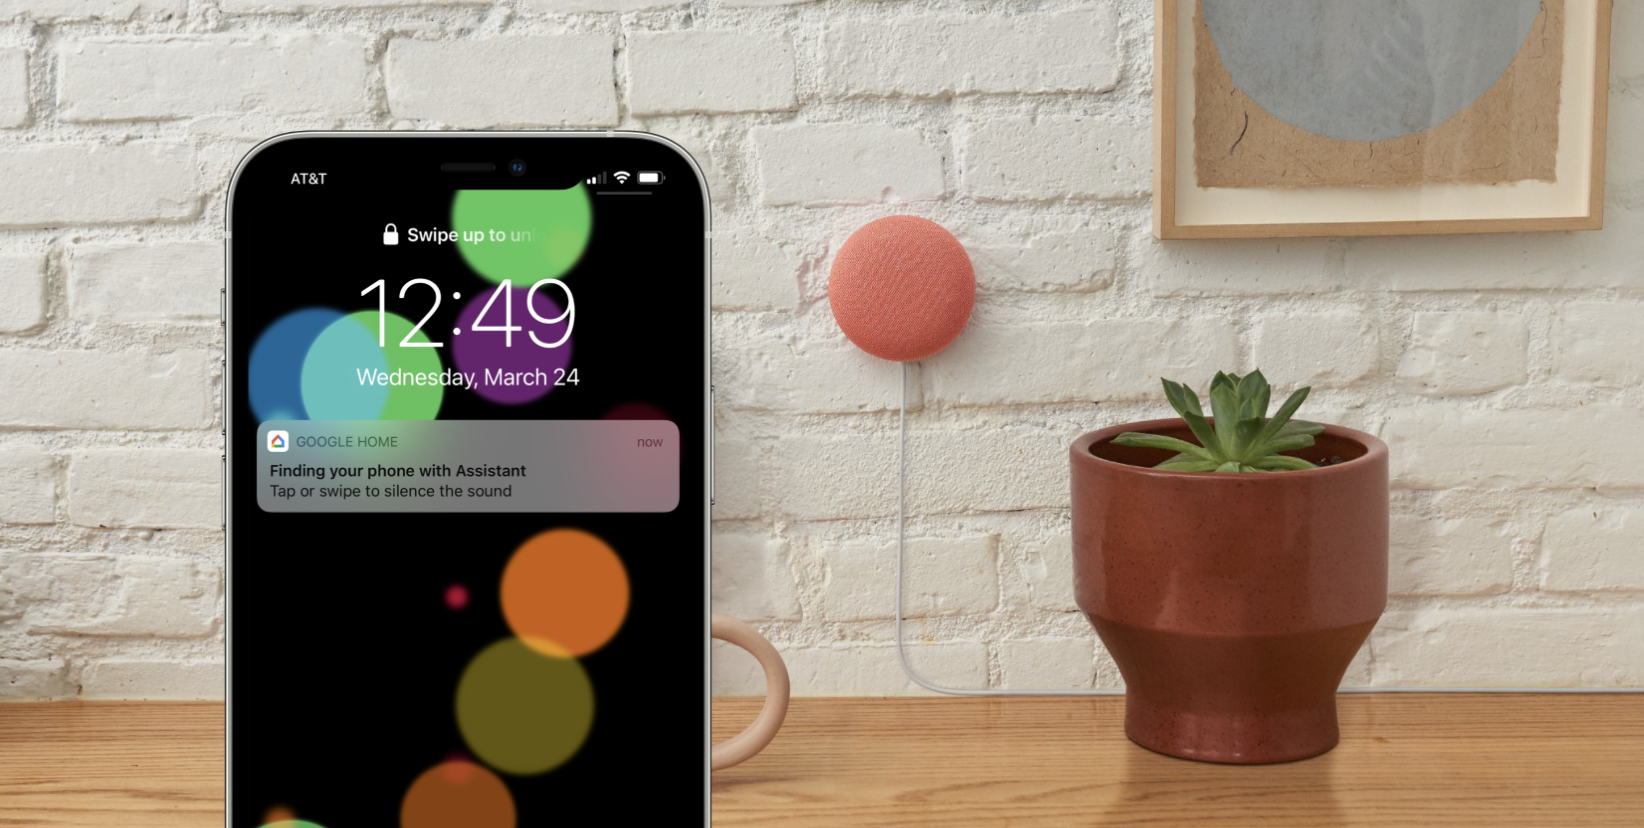 Hey Google, find my iPhone! Google Assistant's new trick scales the wall with Apple